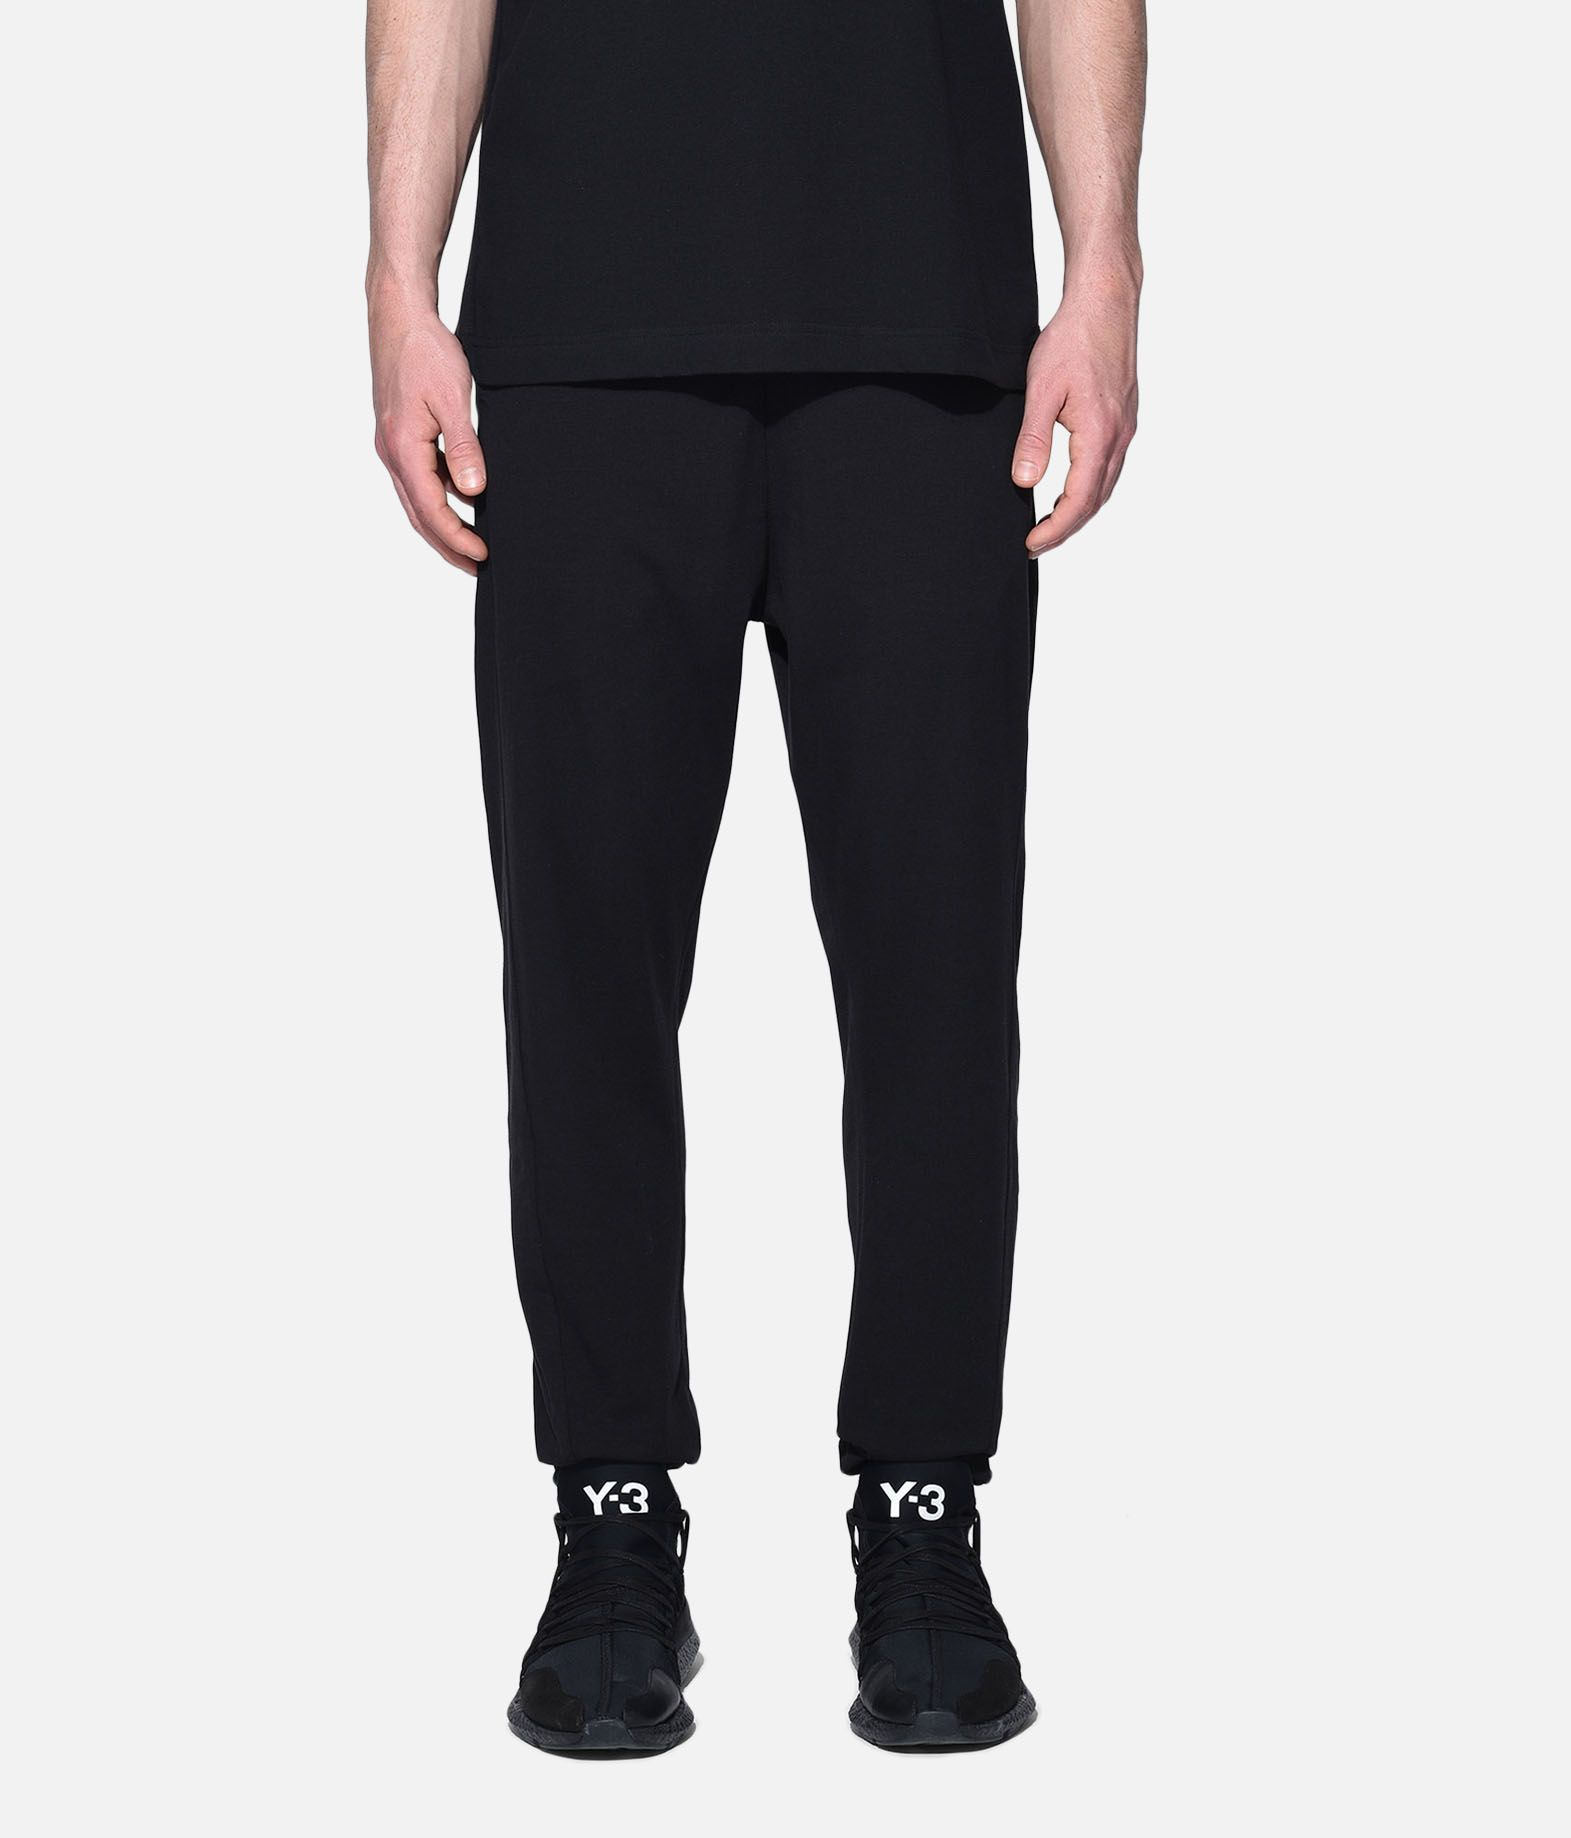 Y-3 Y-3 Logo Long John Pants Leggings Homme r